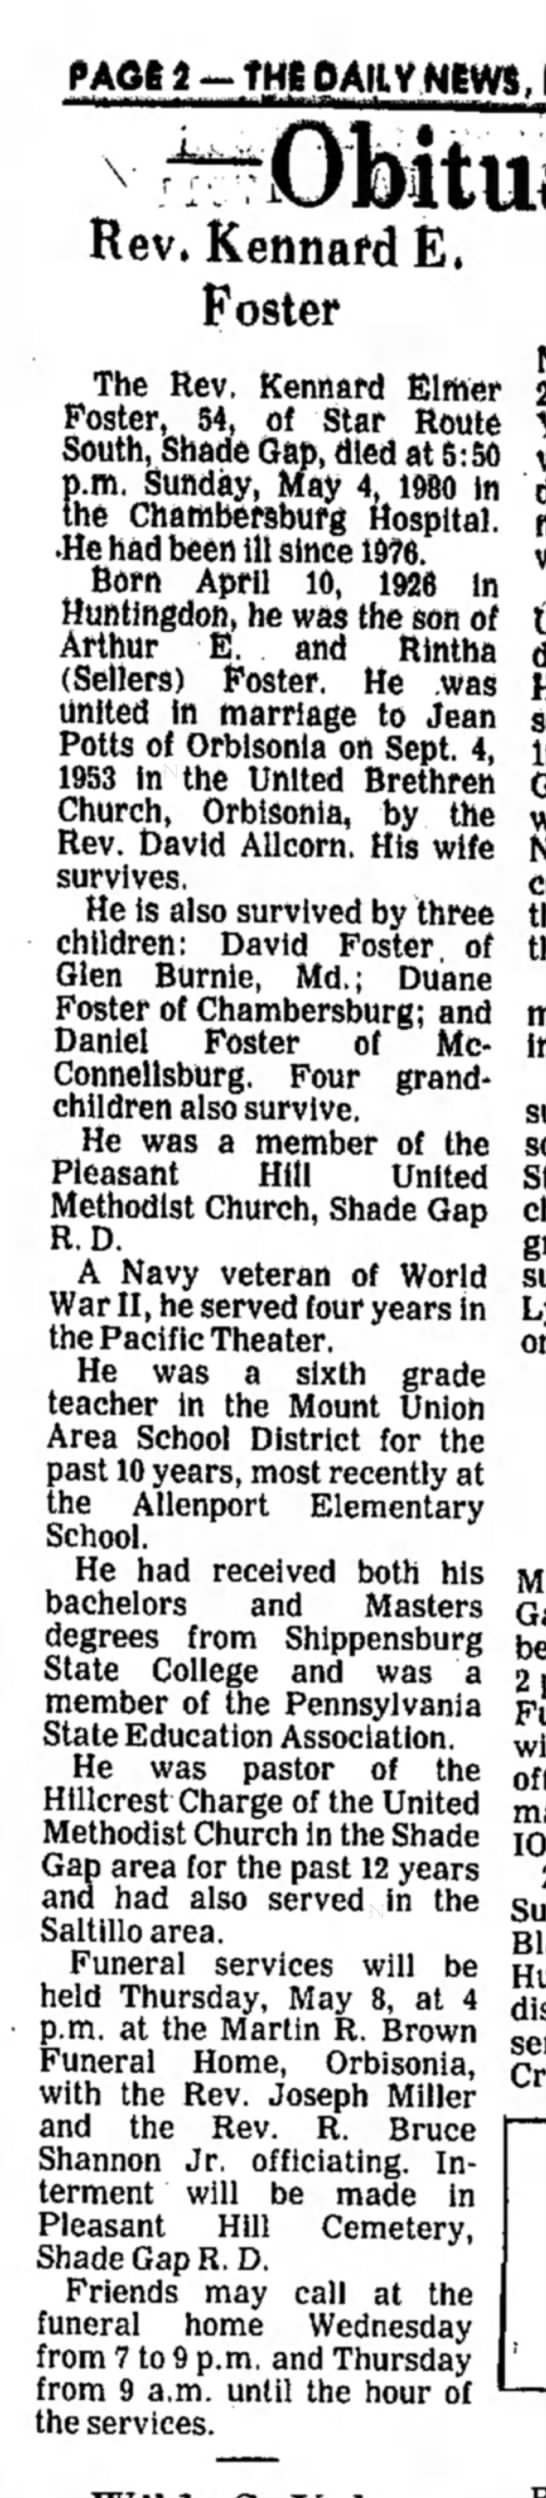 Kennard E. Foster-obit-TDN-p.2-6 May 1980 - THIOAJJ-V NEWS, Rev, KennafdE, Foster The Rev....